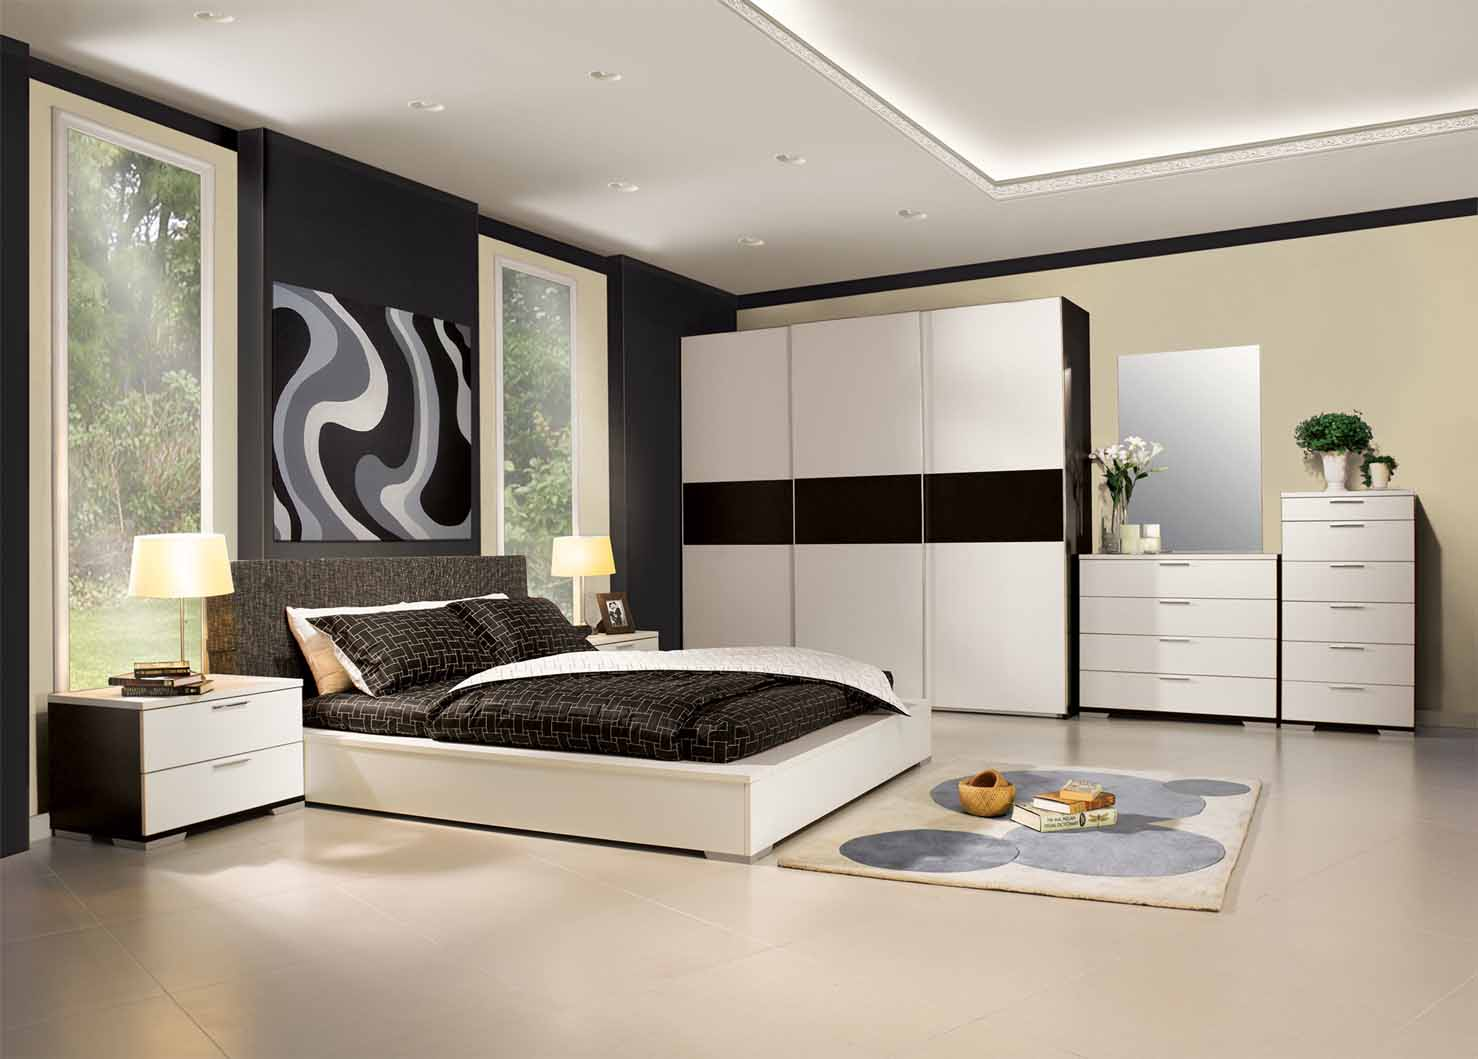 Bedroom Room Design 25 best modern bedroom designs